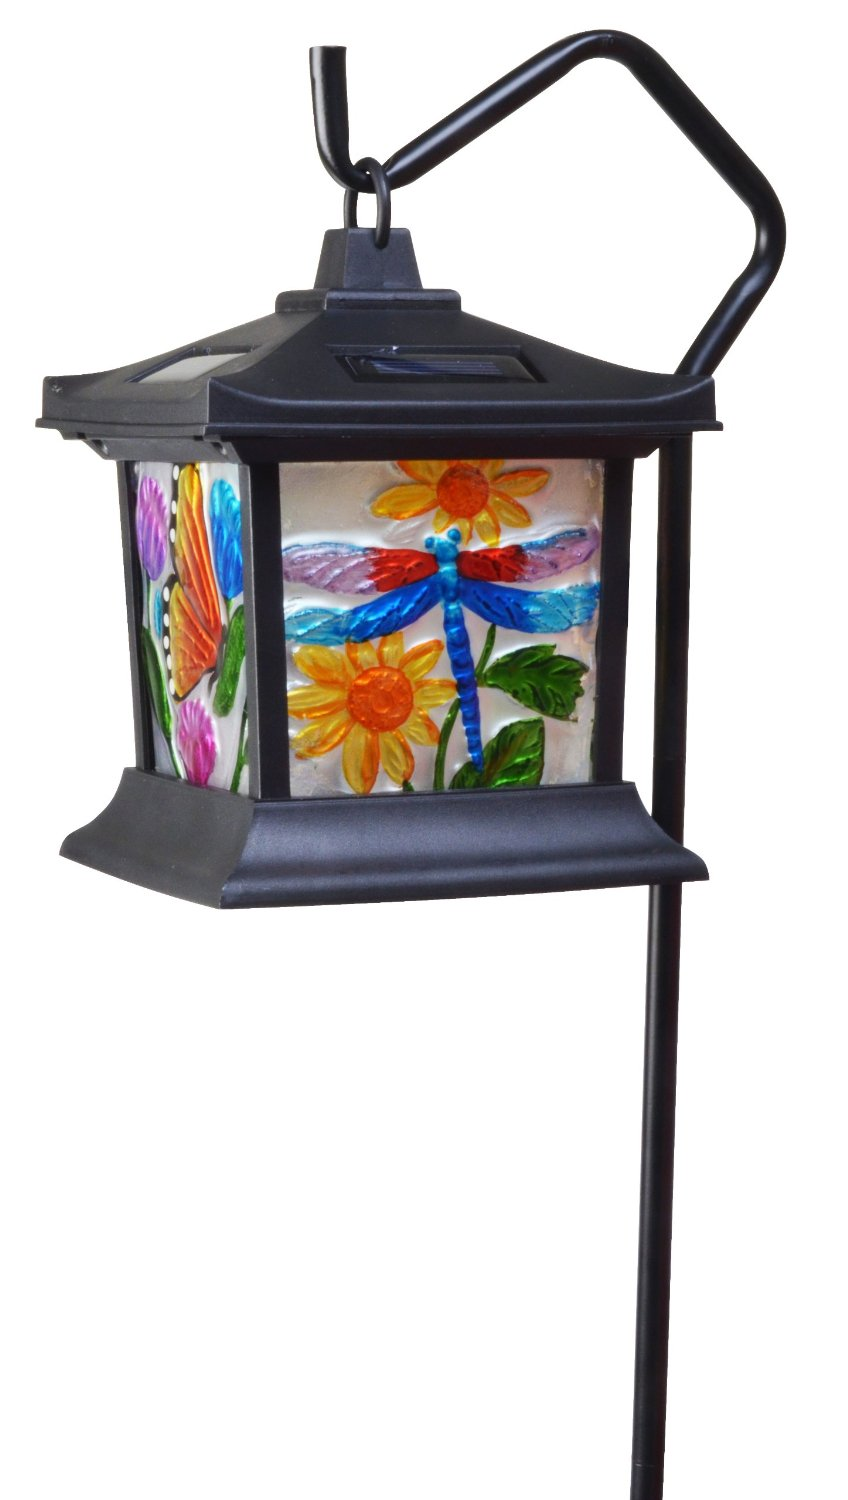 moonrays 92276 solar powered hanging floral stained glass led light party supply factory. Black Bedroom Furniture Sets. Home Design Ideas